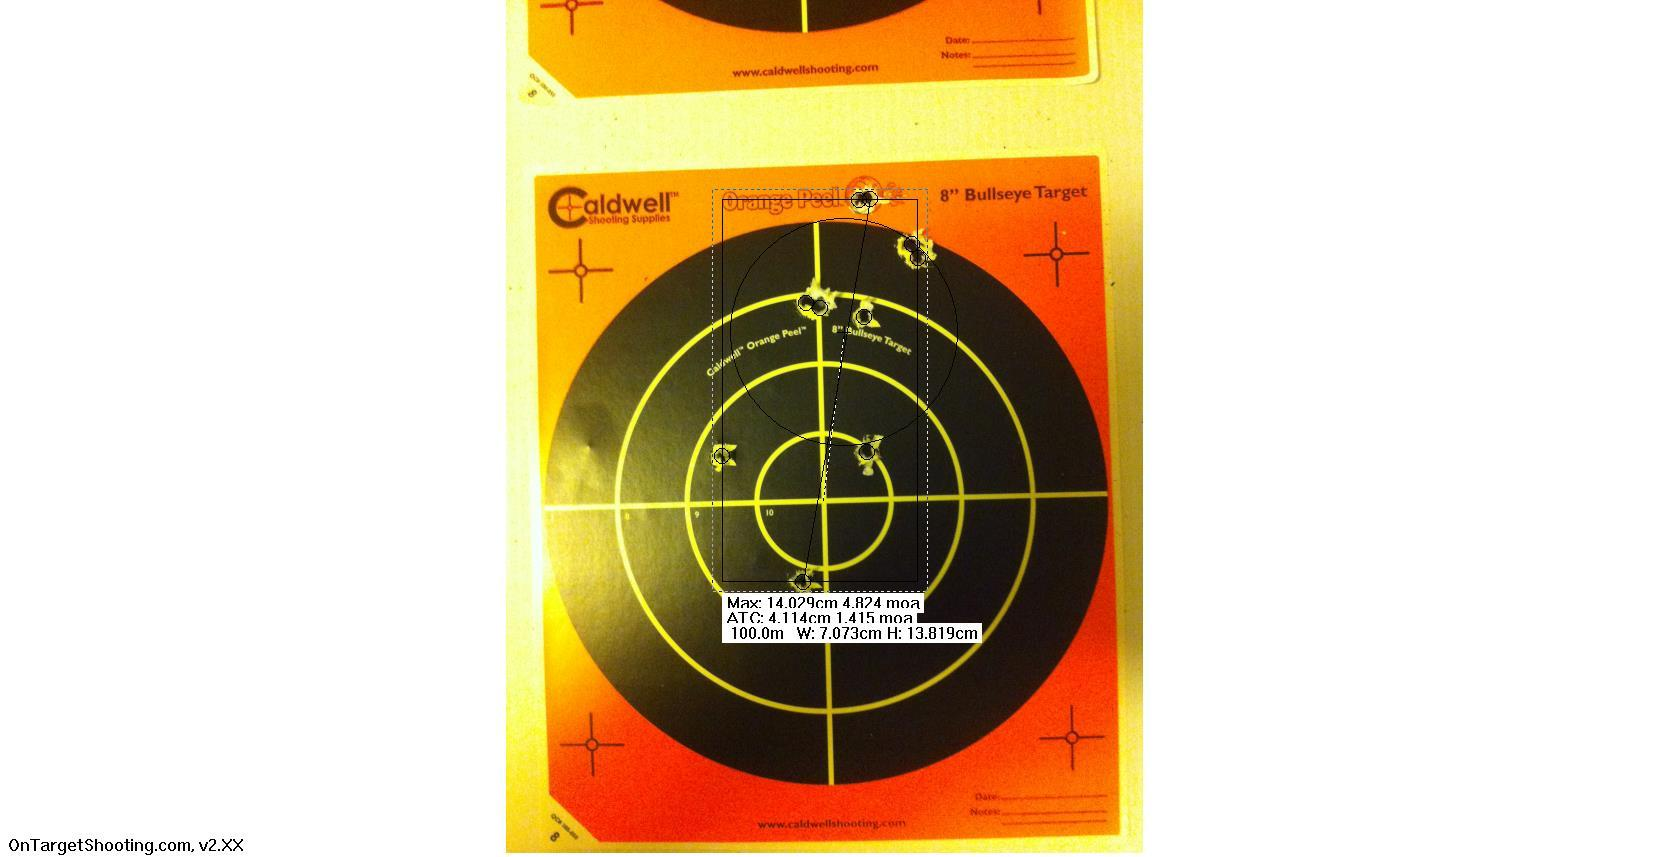 Accuracy, zeroing, group sizes - what is acceptable